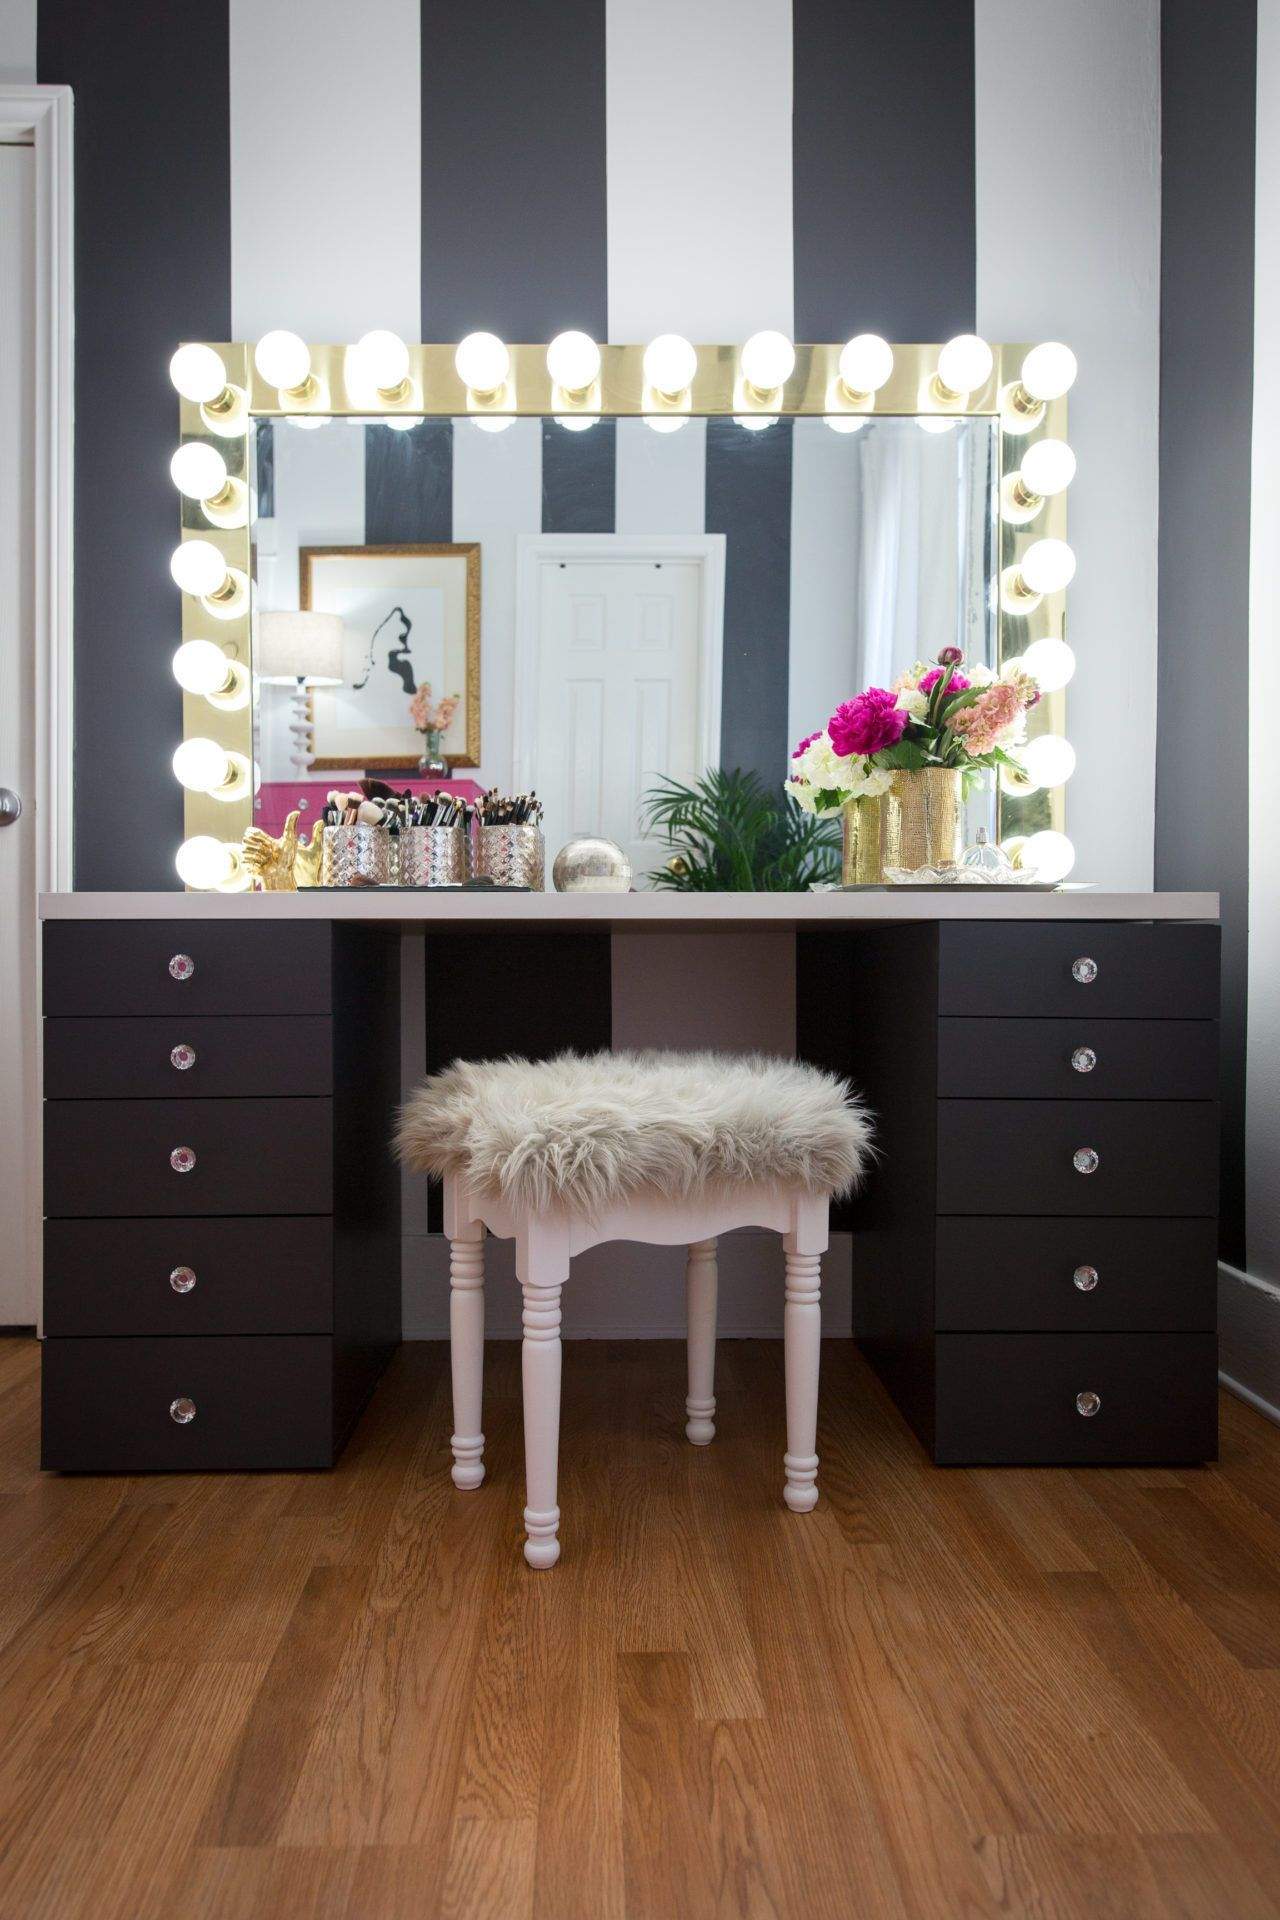 Upcycled Alex Drawers Ikea Hack Ikea makeup vanity, Diy